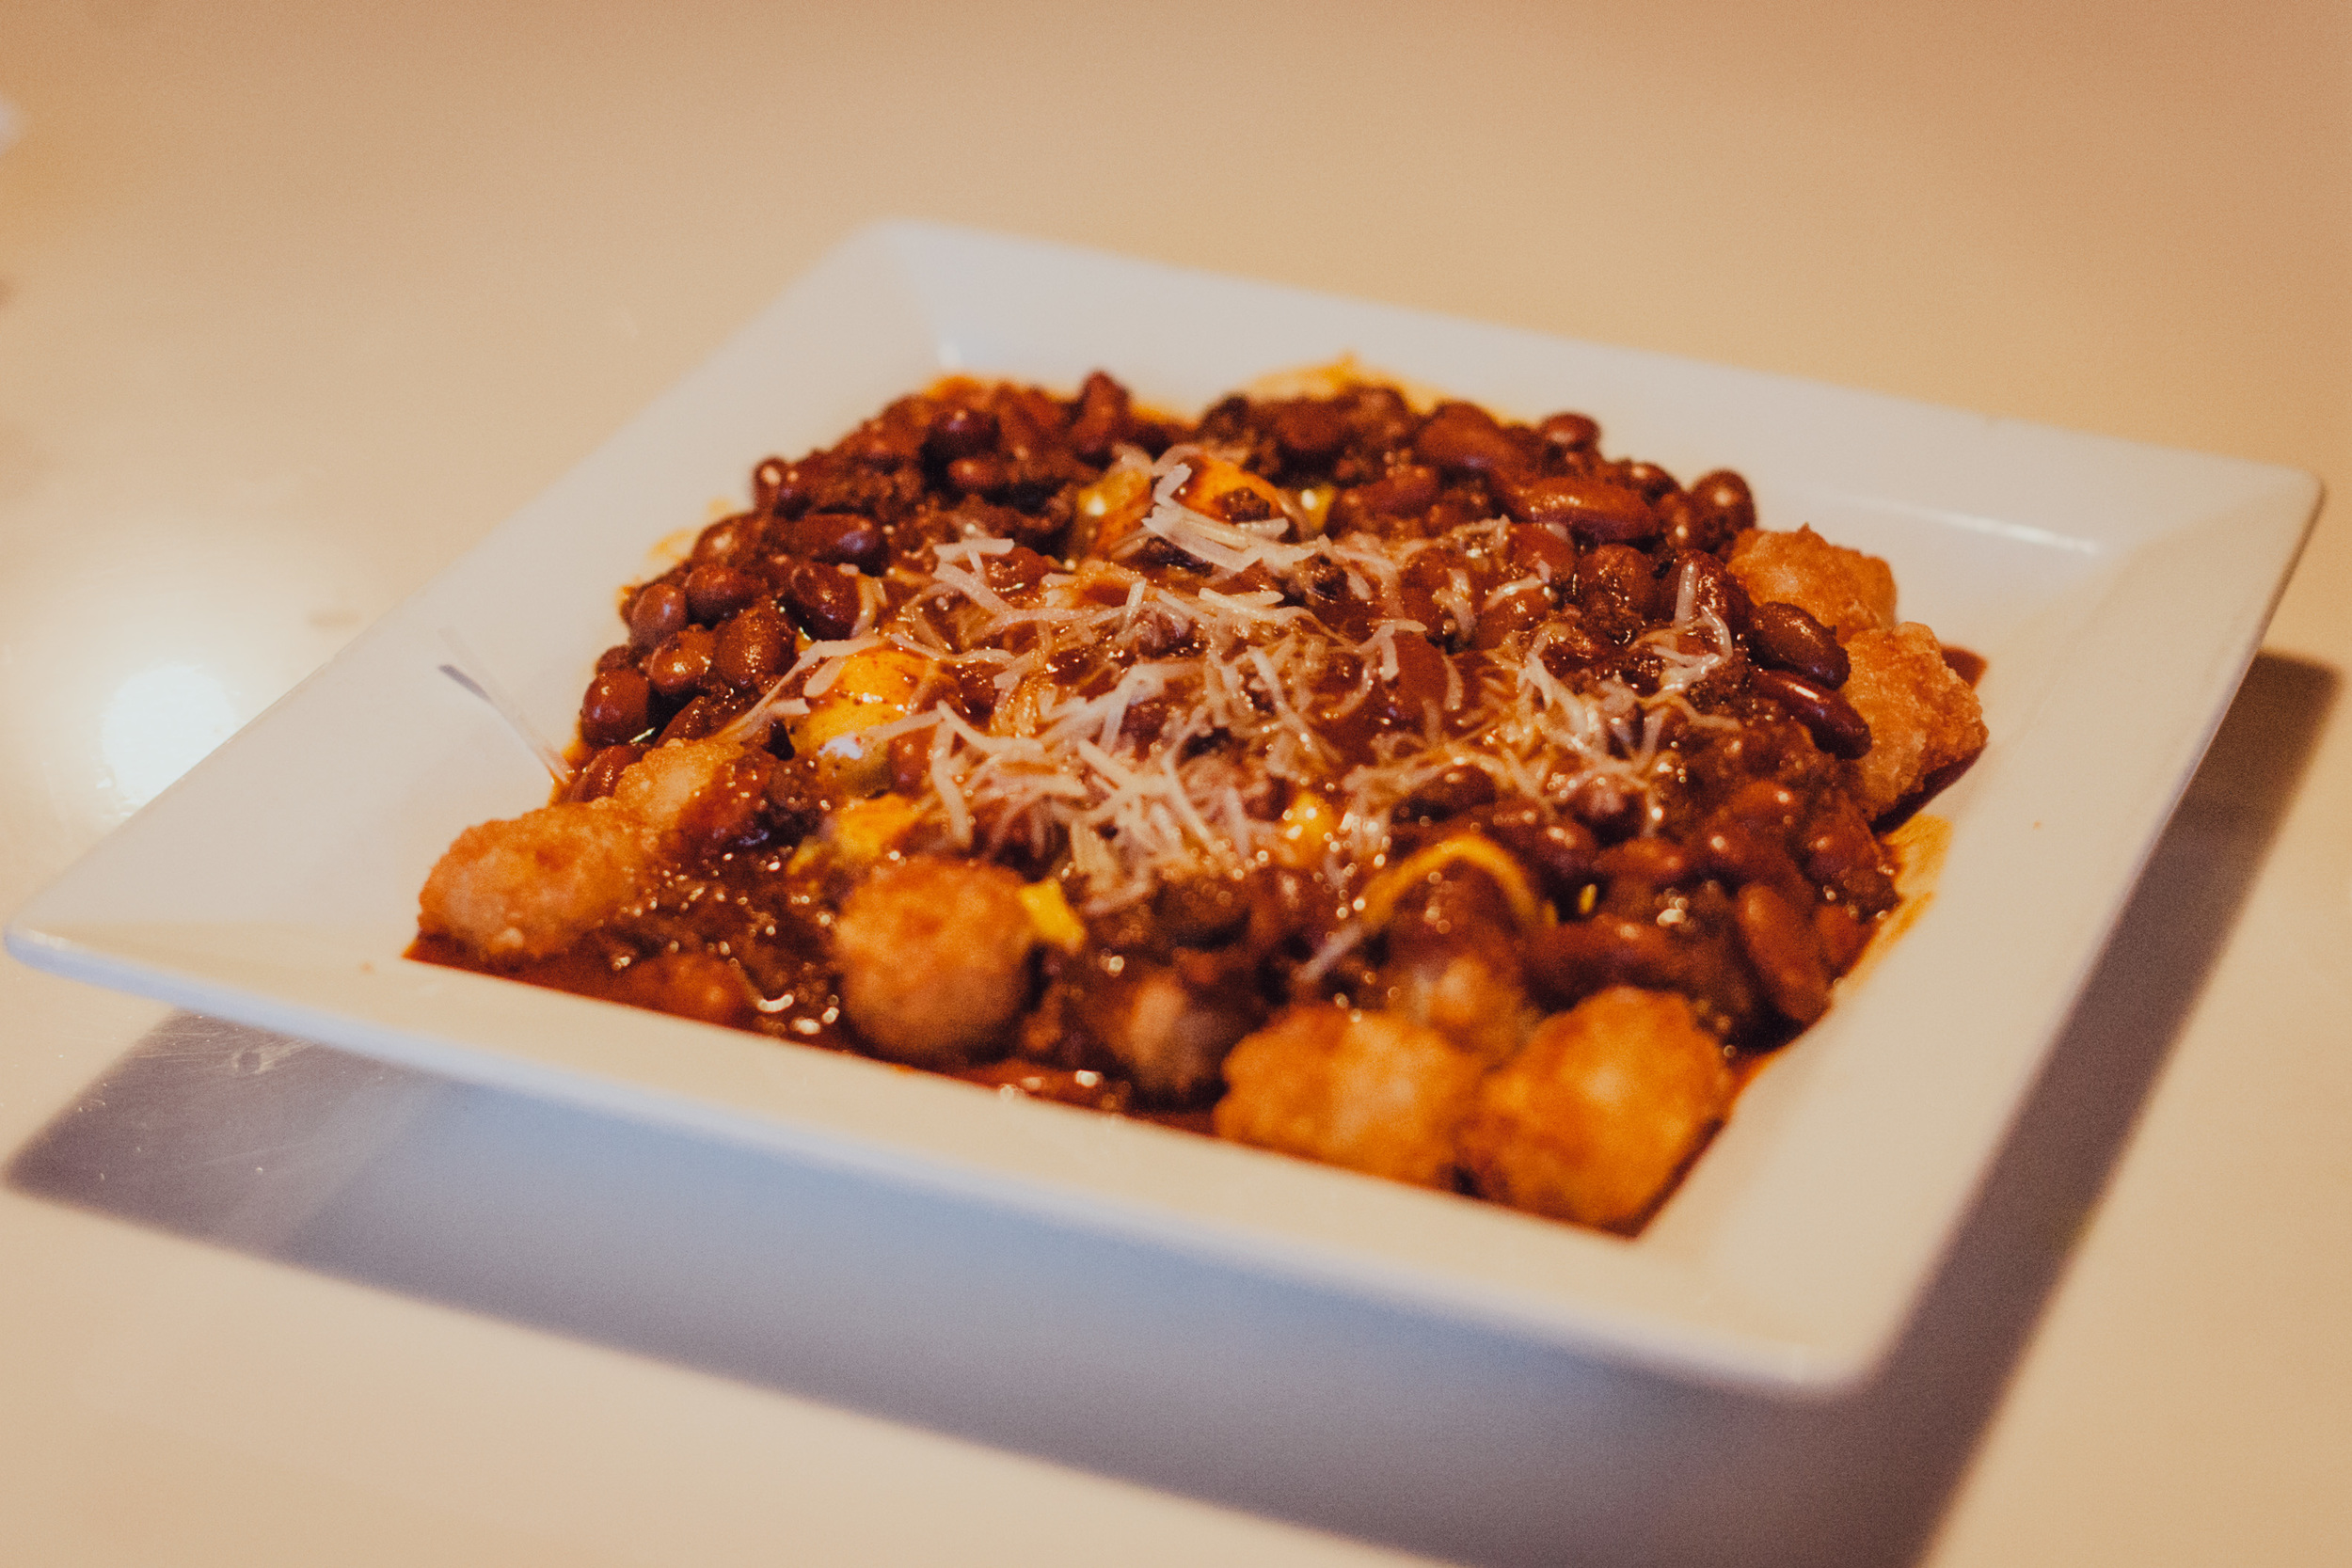 Macho Tator Tots smothered with Chili and topped with Shredded Jack & Cheddar Cheese.